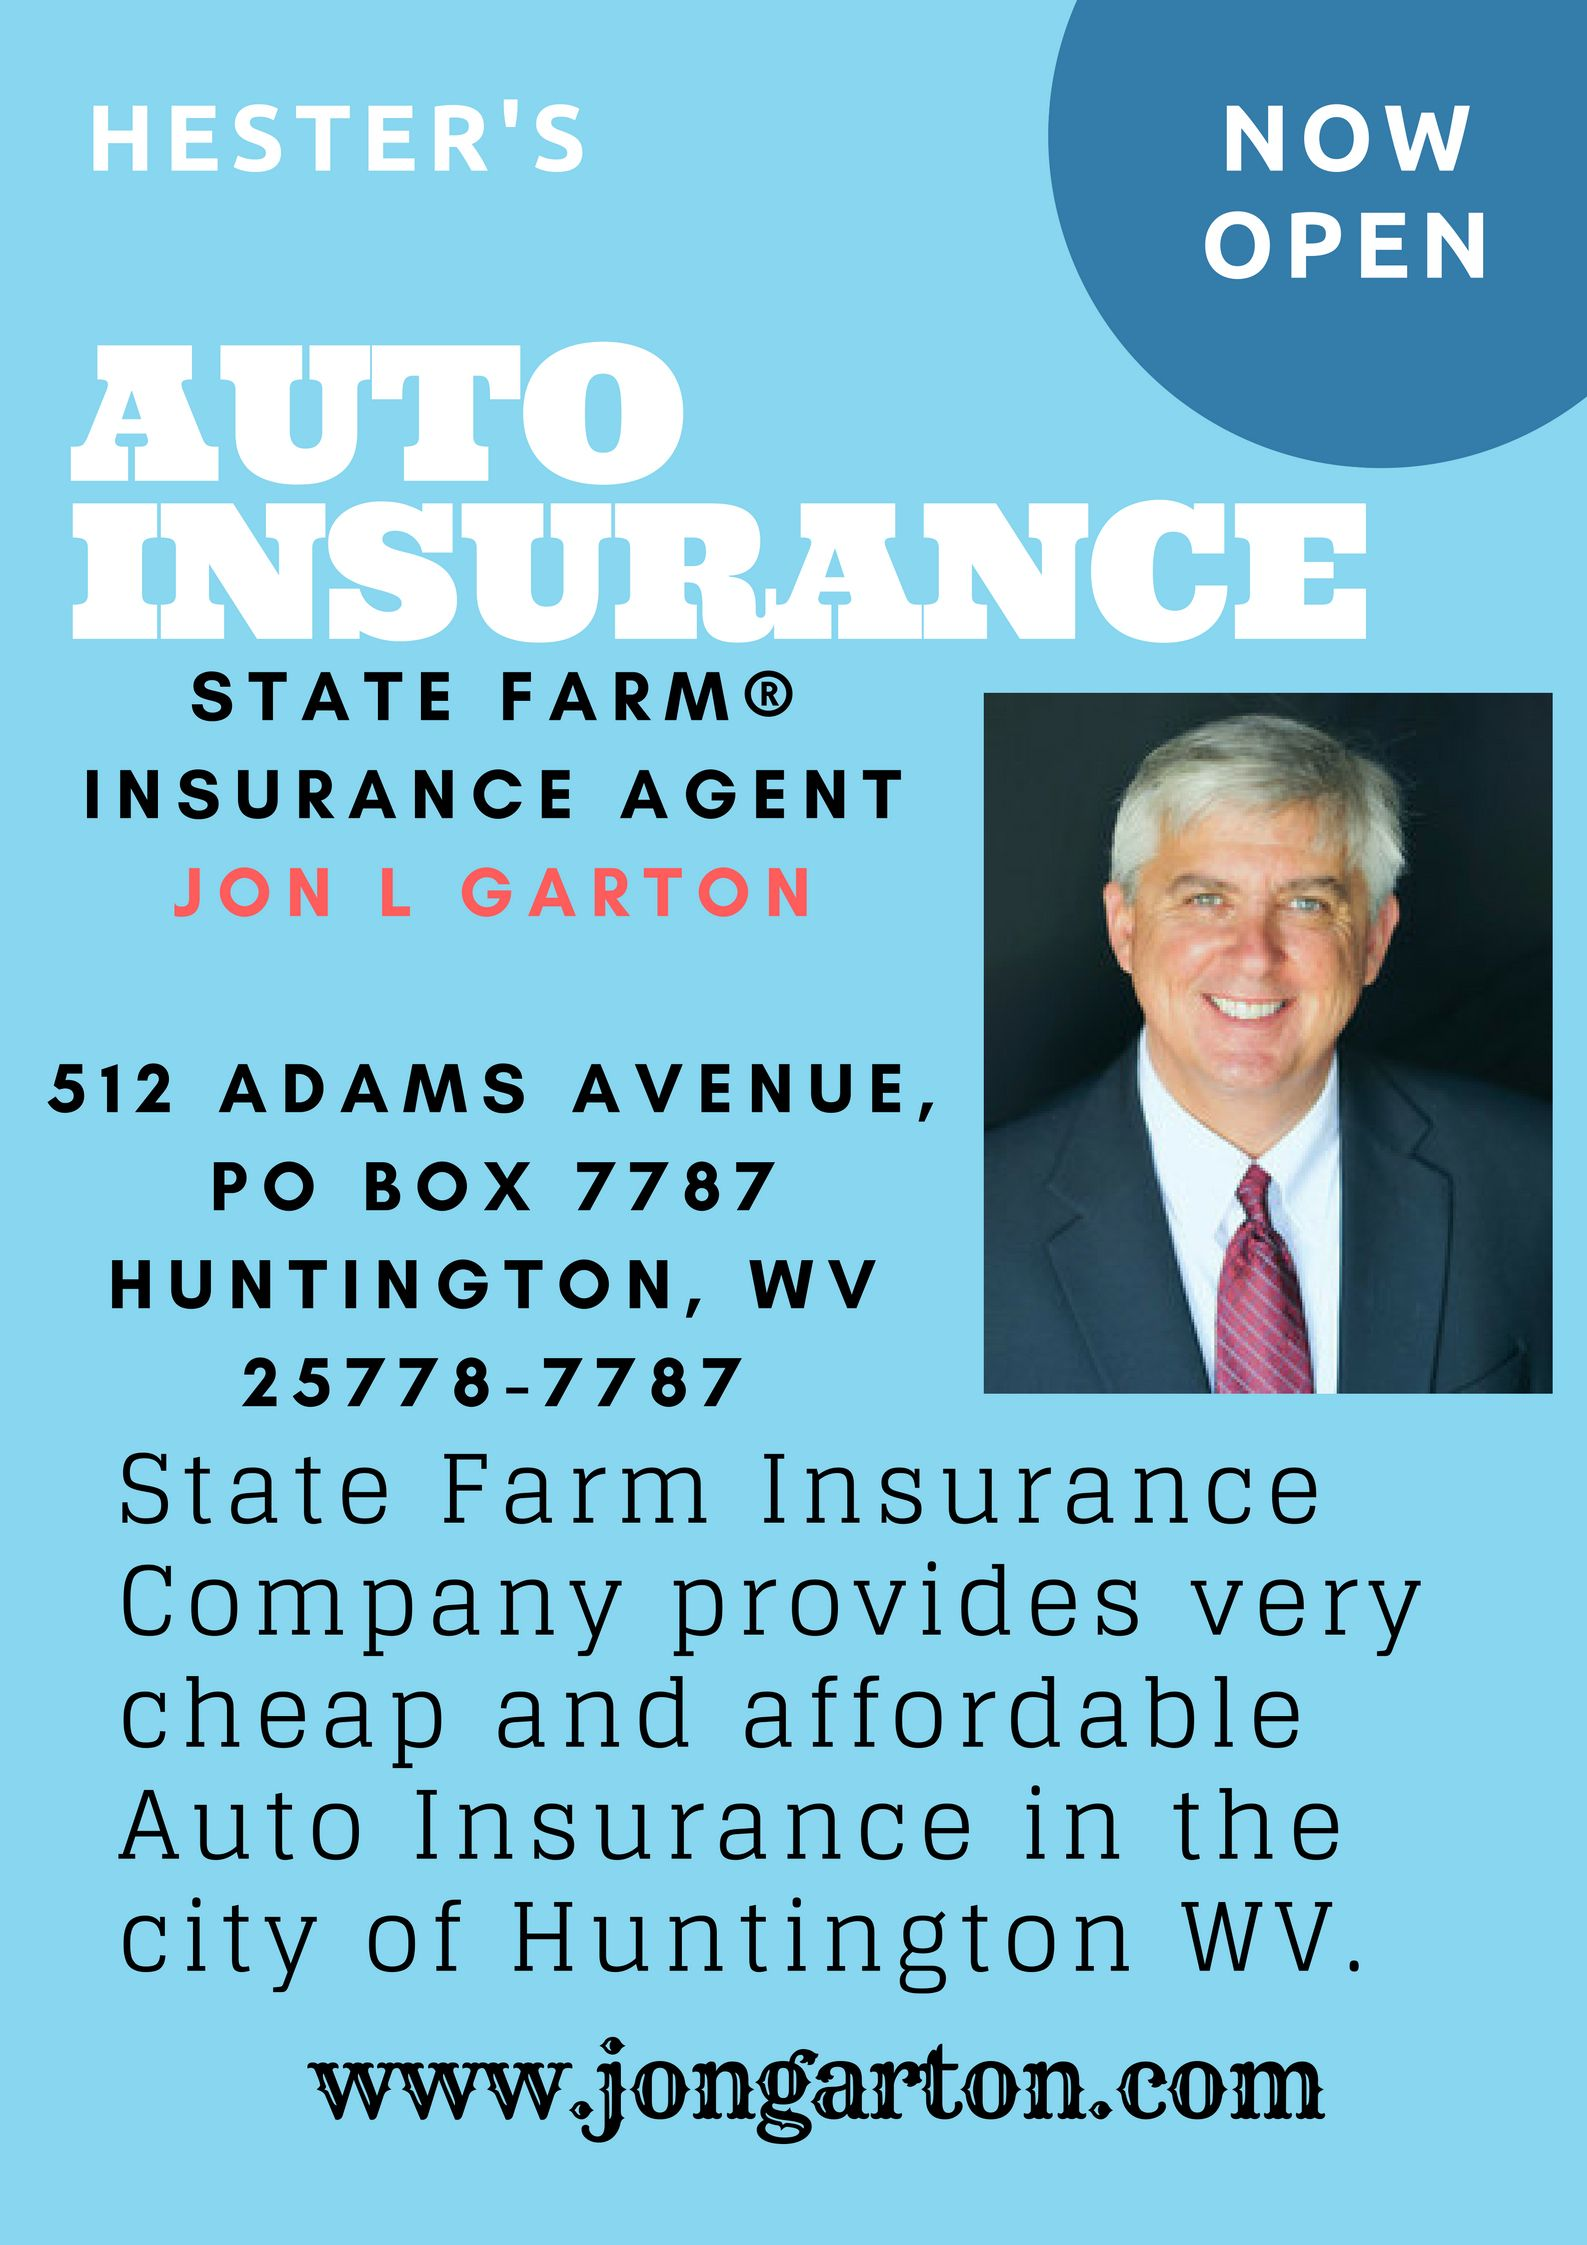 State Farm Insurance Company Provides Very Cheap And Affordable